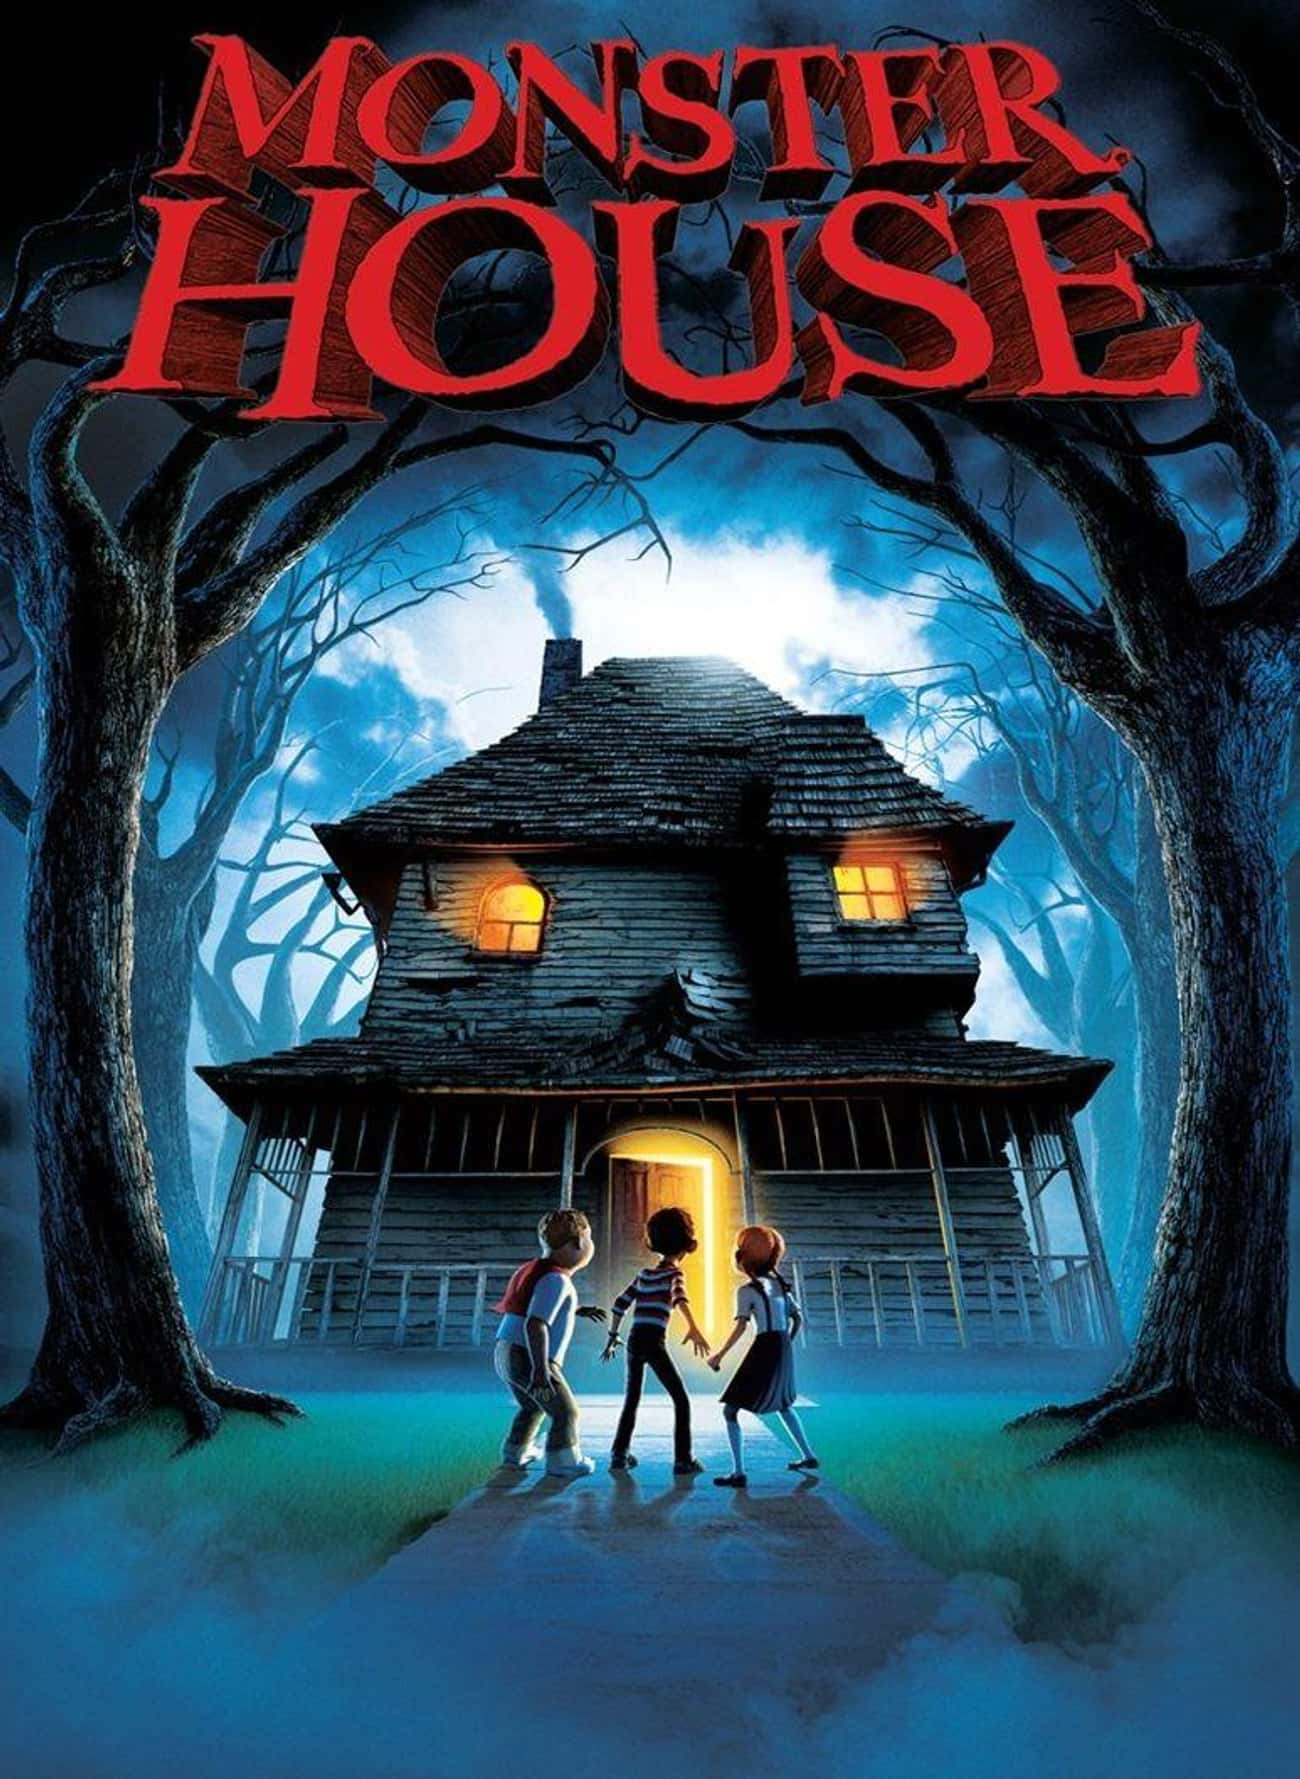 Monster House is listed (or ranked) 4 on the list Underrated Halloween Movies You Should Watch This Year